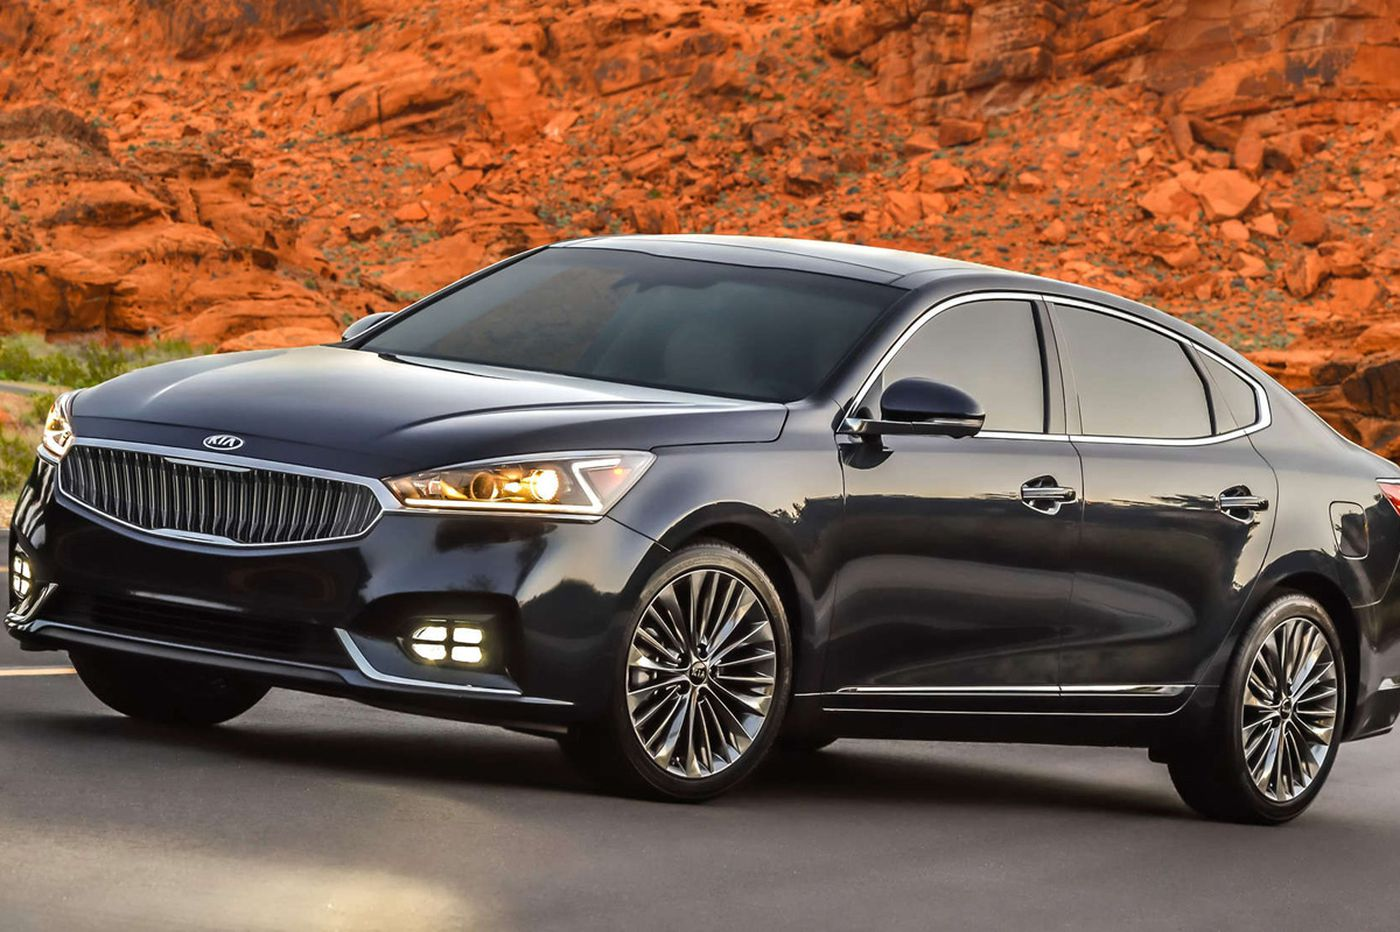 2017 Kia Cadenza is stylish, but a little tame